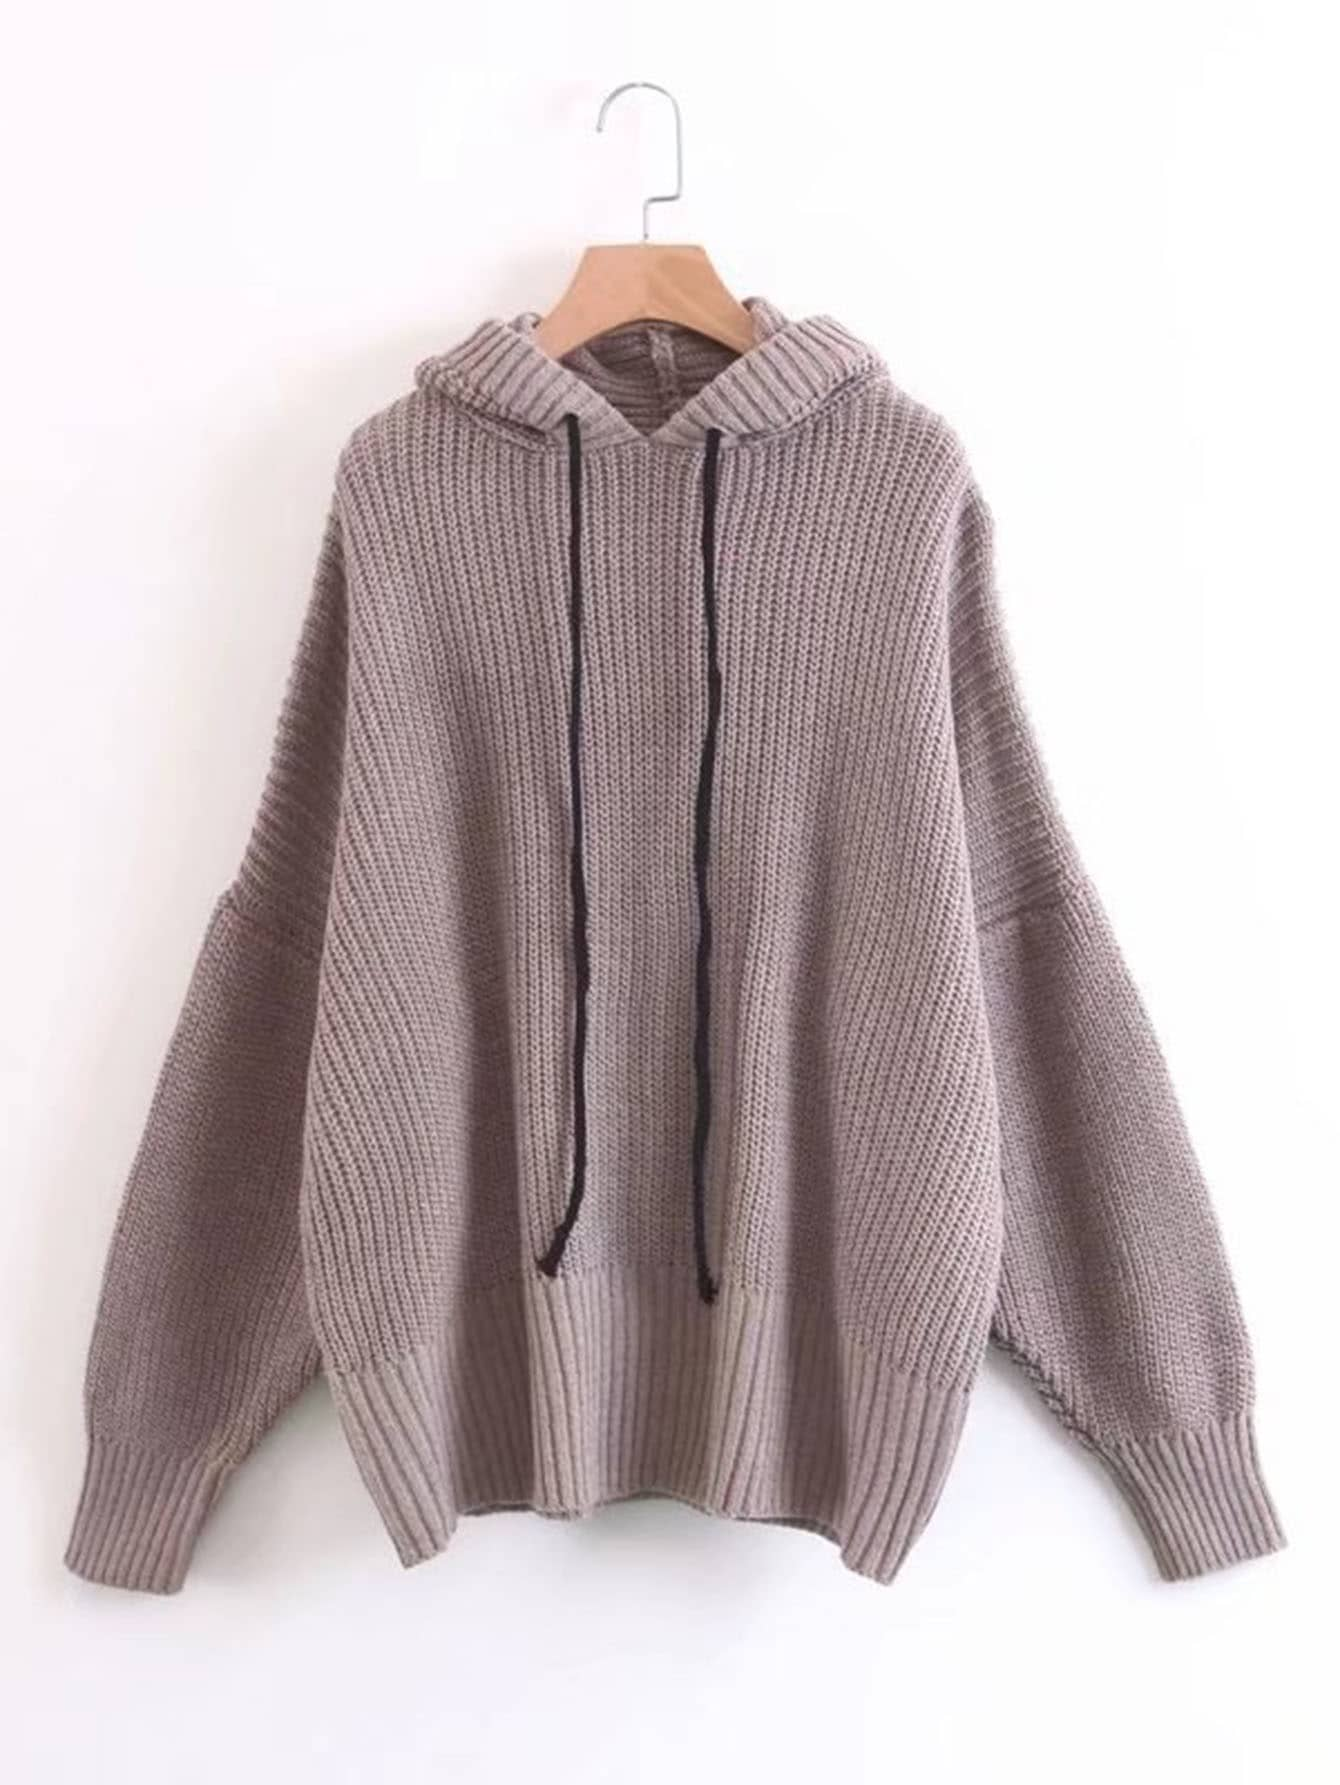 Drop Shoulder Ribbed Knit Hooded Sweater sweater170829209